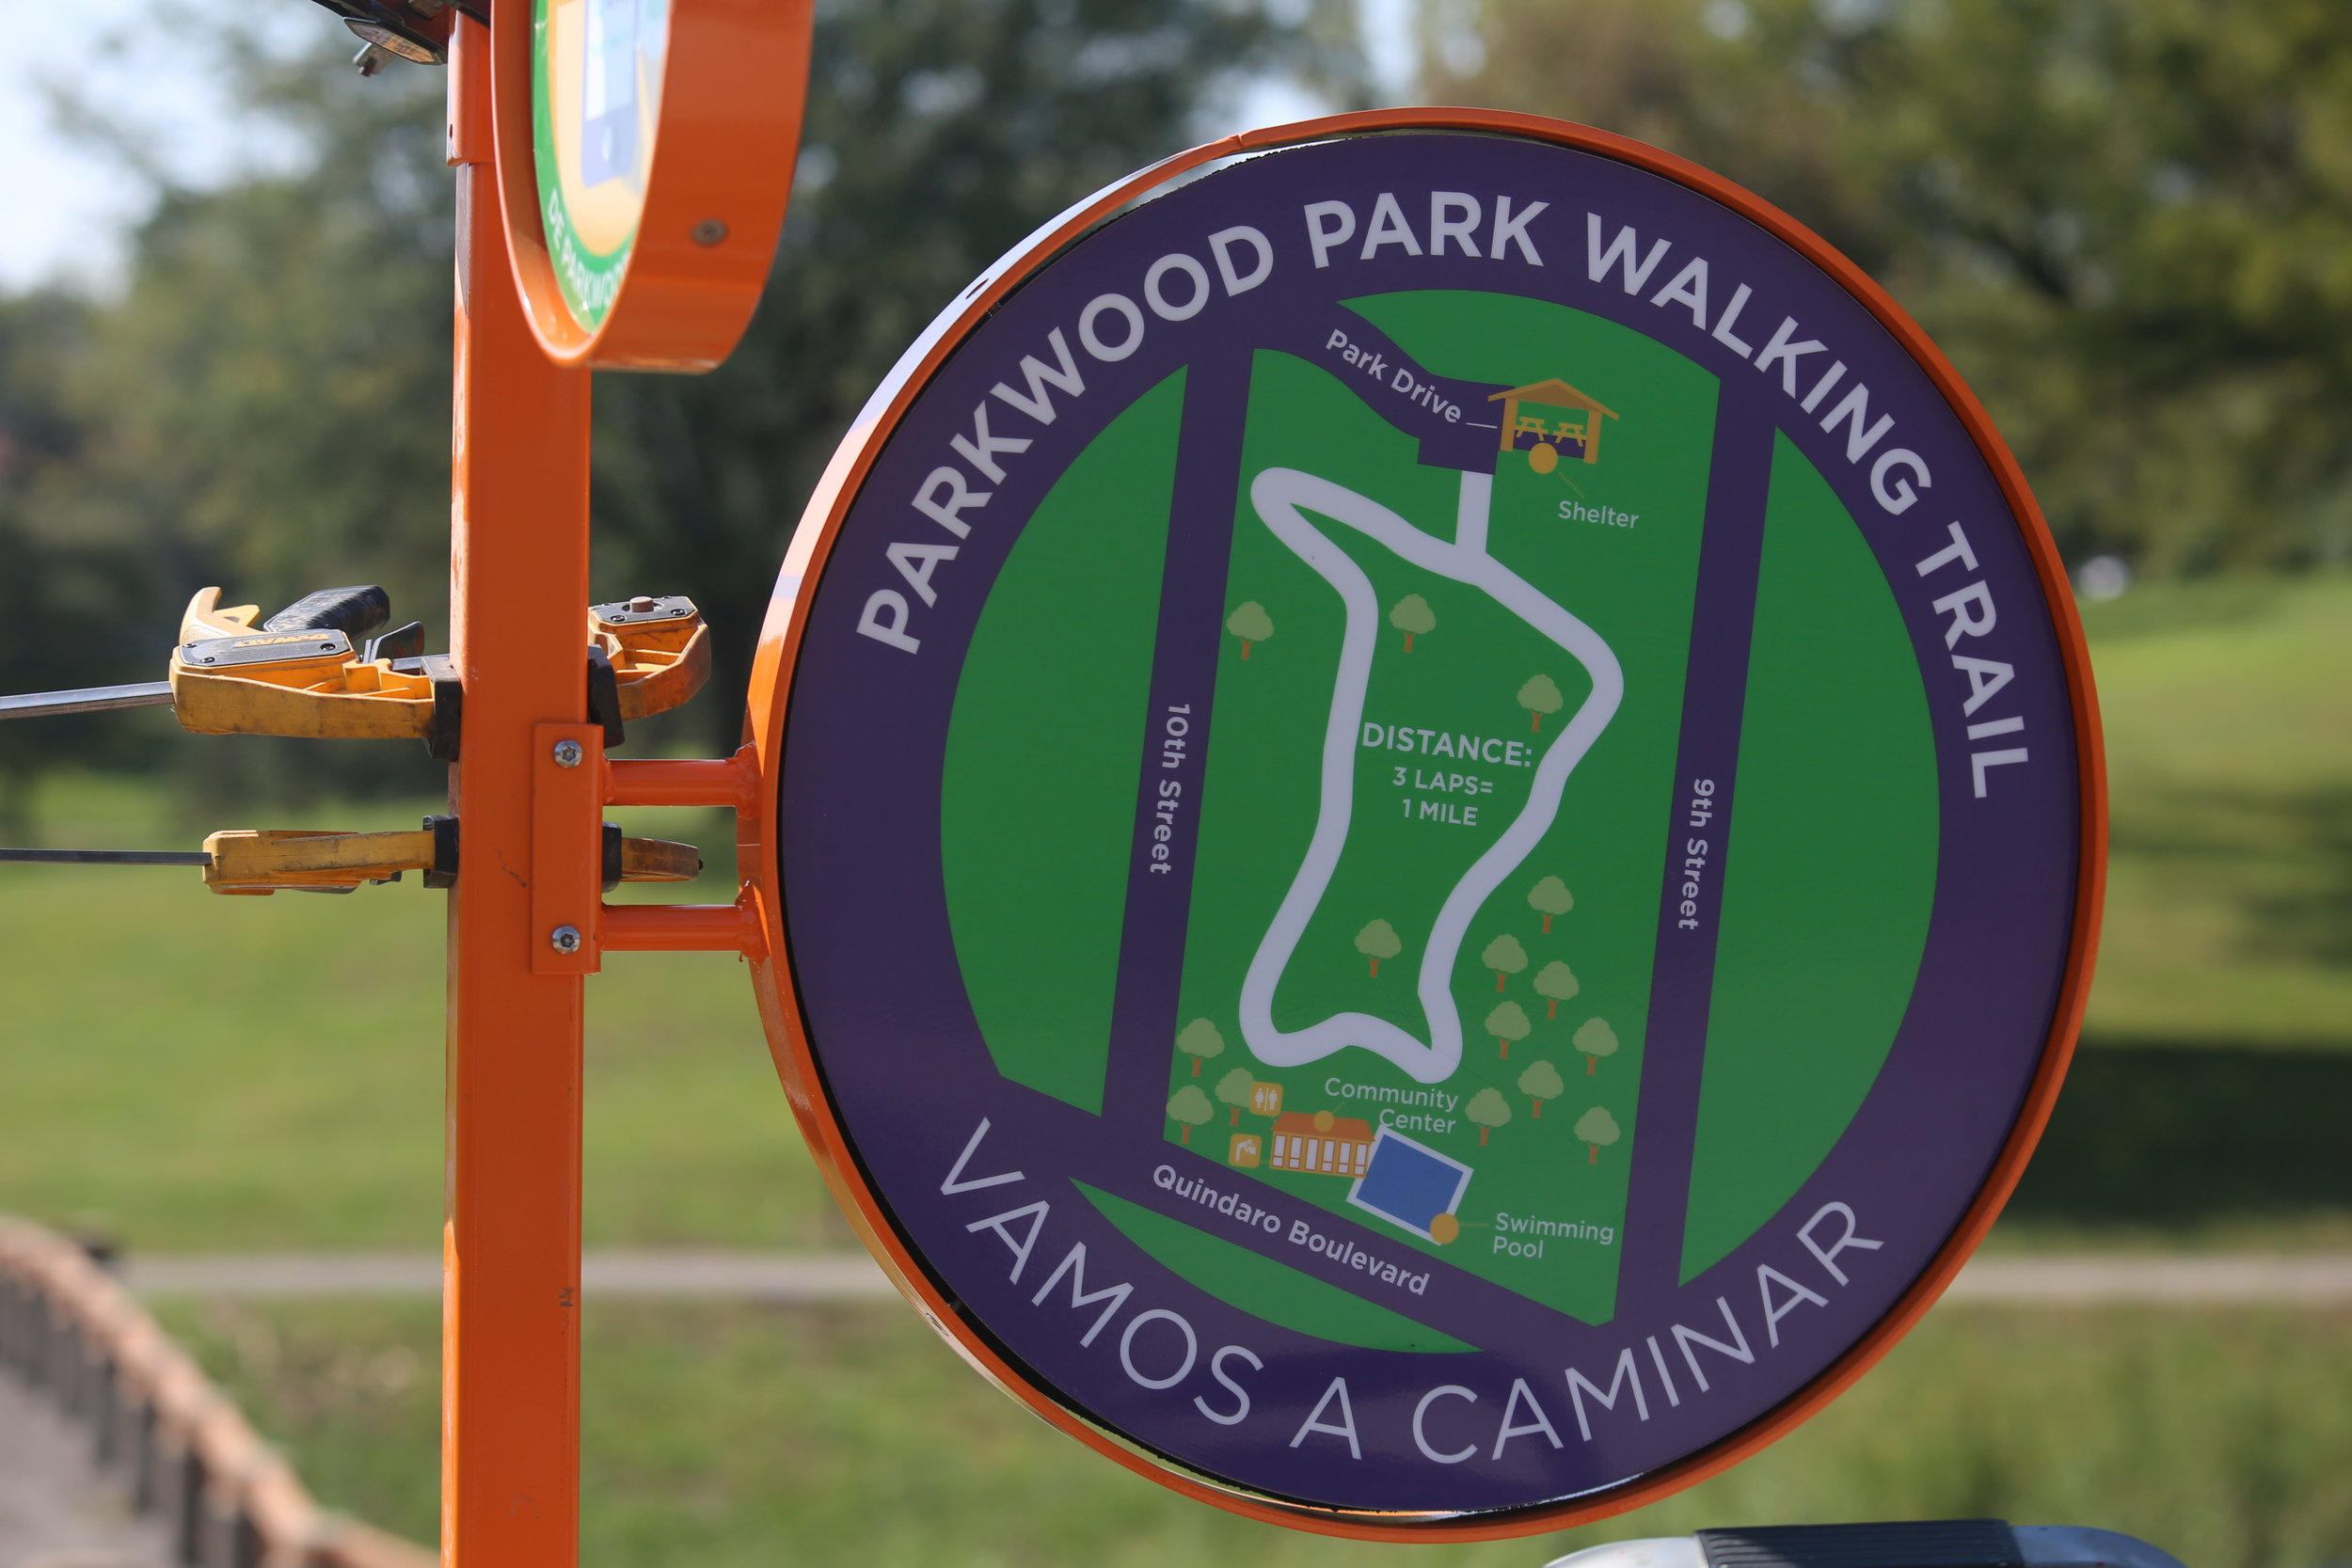 The Totem also includes a large map of the park and walking trail with references for wayfinding in and around the park.